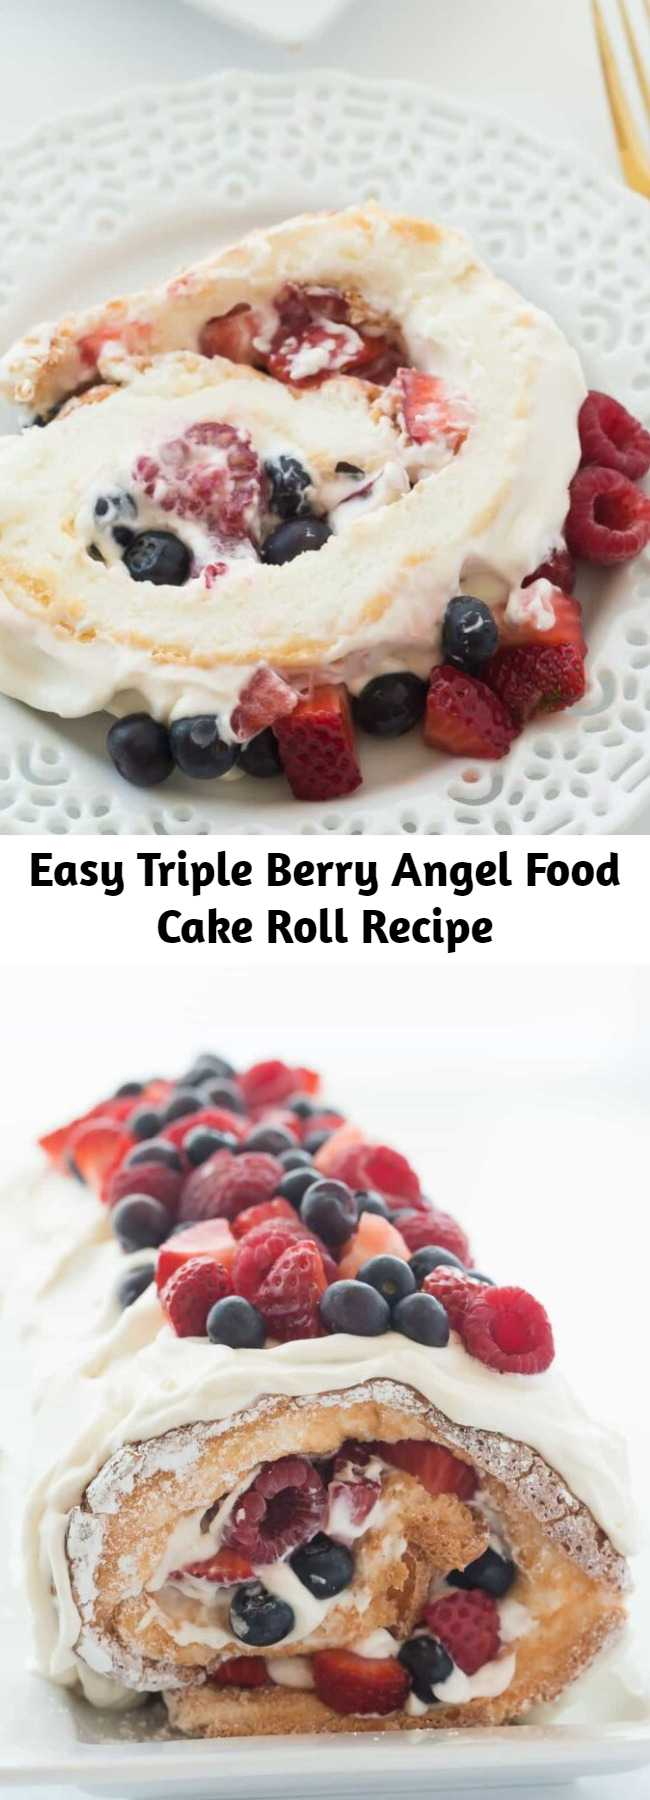 Easy Triple Berry Angel Food Cake Roll Recipe - This Triple Berry Angel Food Cake Roll is an easy red, white and blue dessert (or just red and white!) for the 4th of July or Canada Day, or any day! Perfect with fresh summer strawberries, raspberries and blueberries? #recipe #cake #dessert #strawberry #blueberry #raspberry